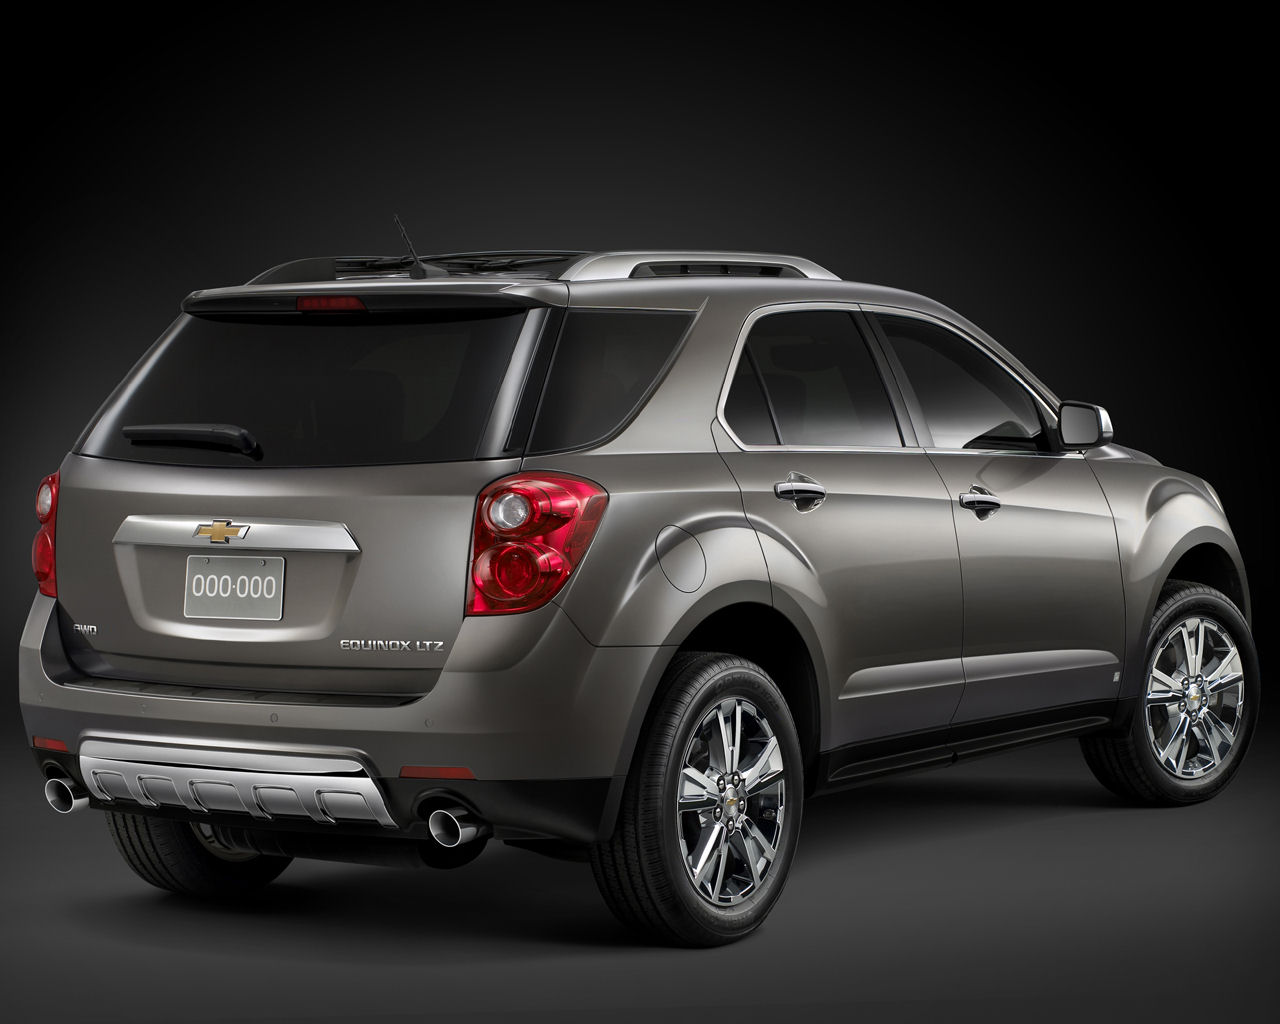 2012 Chevrolet Equinox Rear (View 4 of 6)